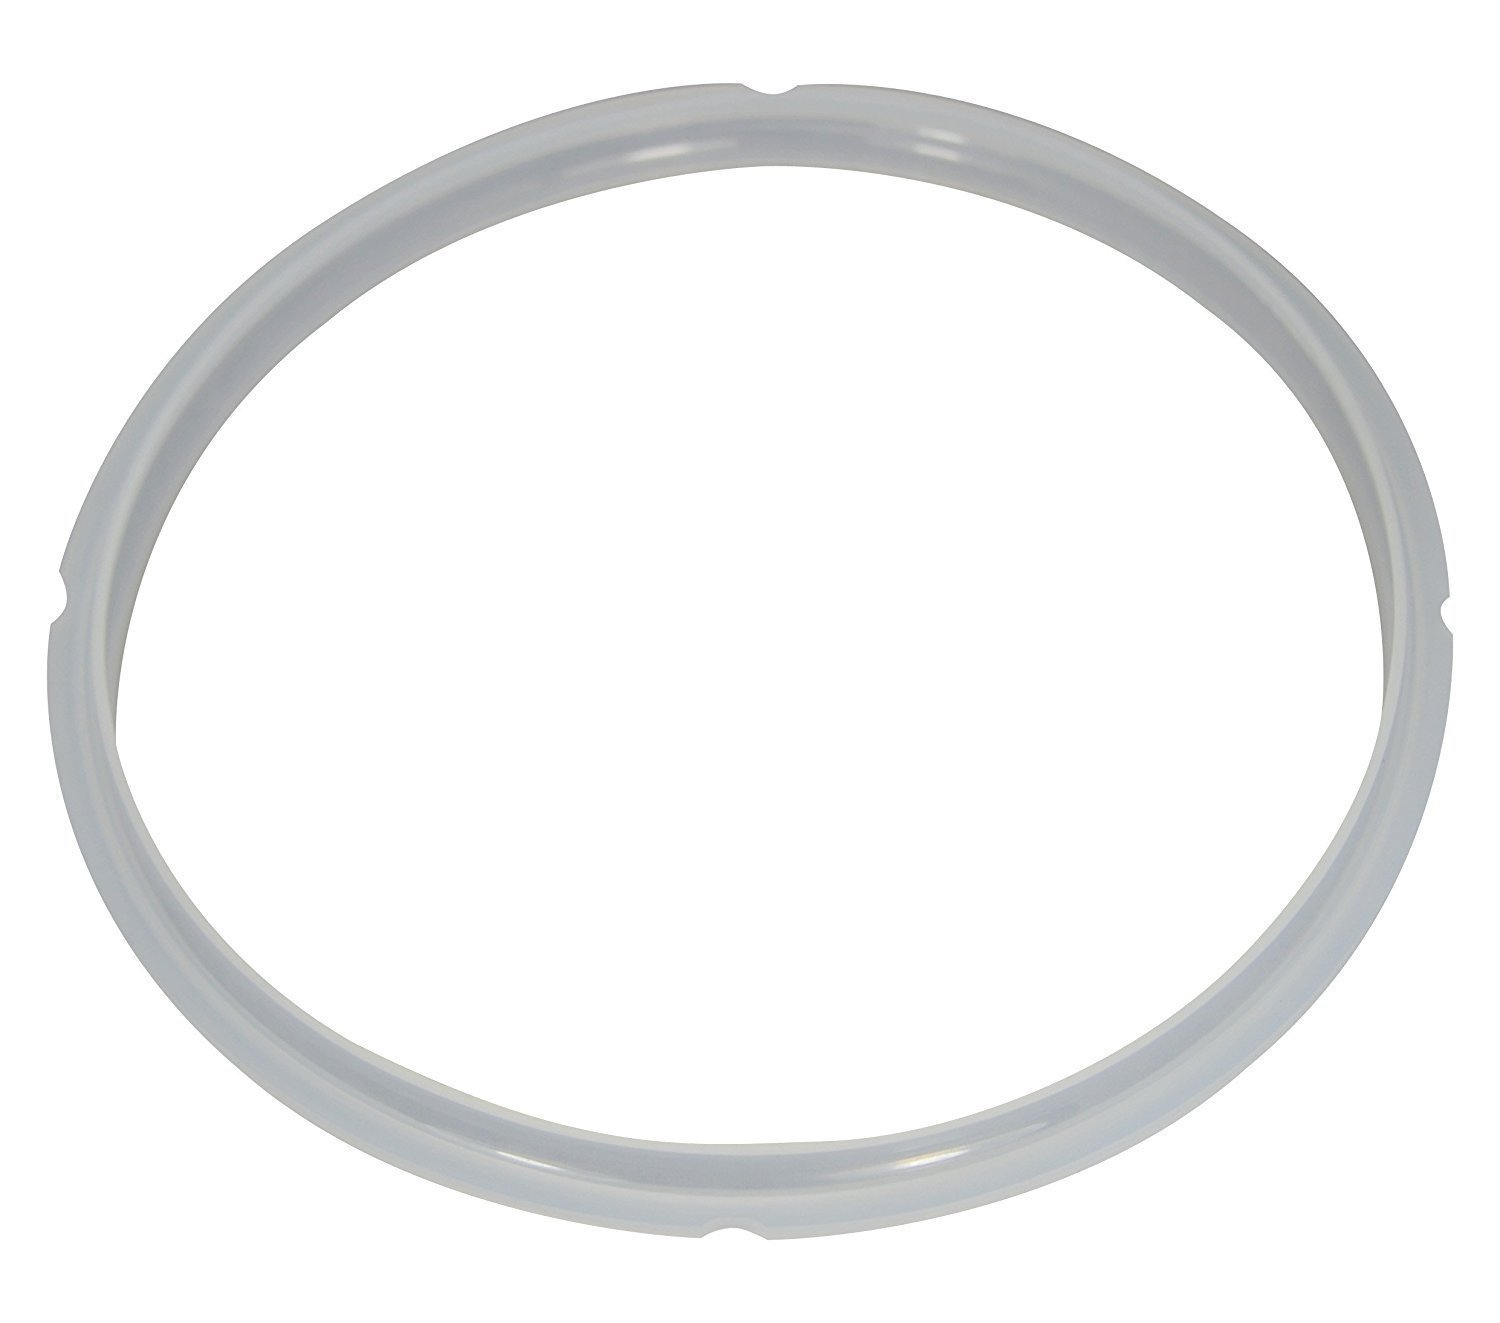 Sealing Gasket For T-fal CY505E 12-in-1 Programmable Electric Multi-Functional Pressure Cooker